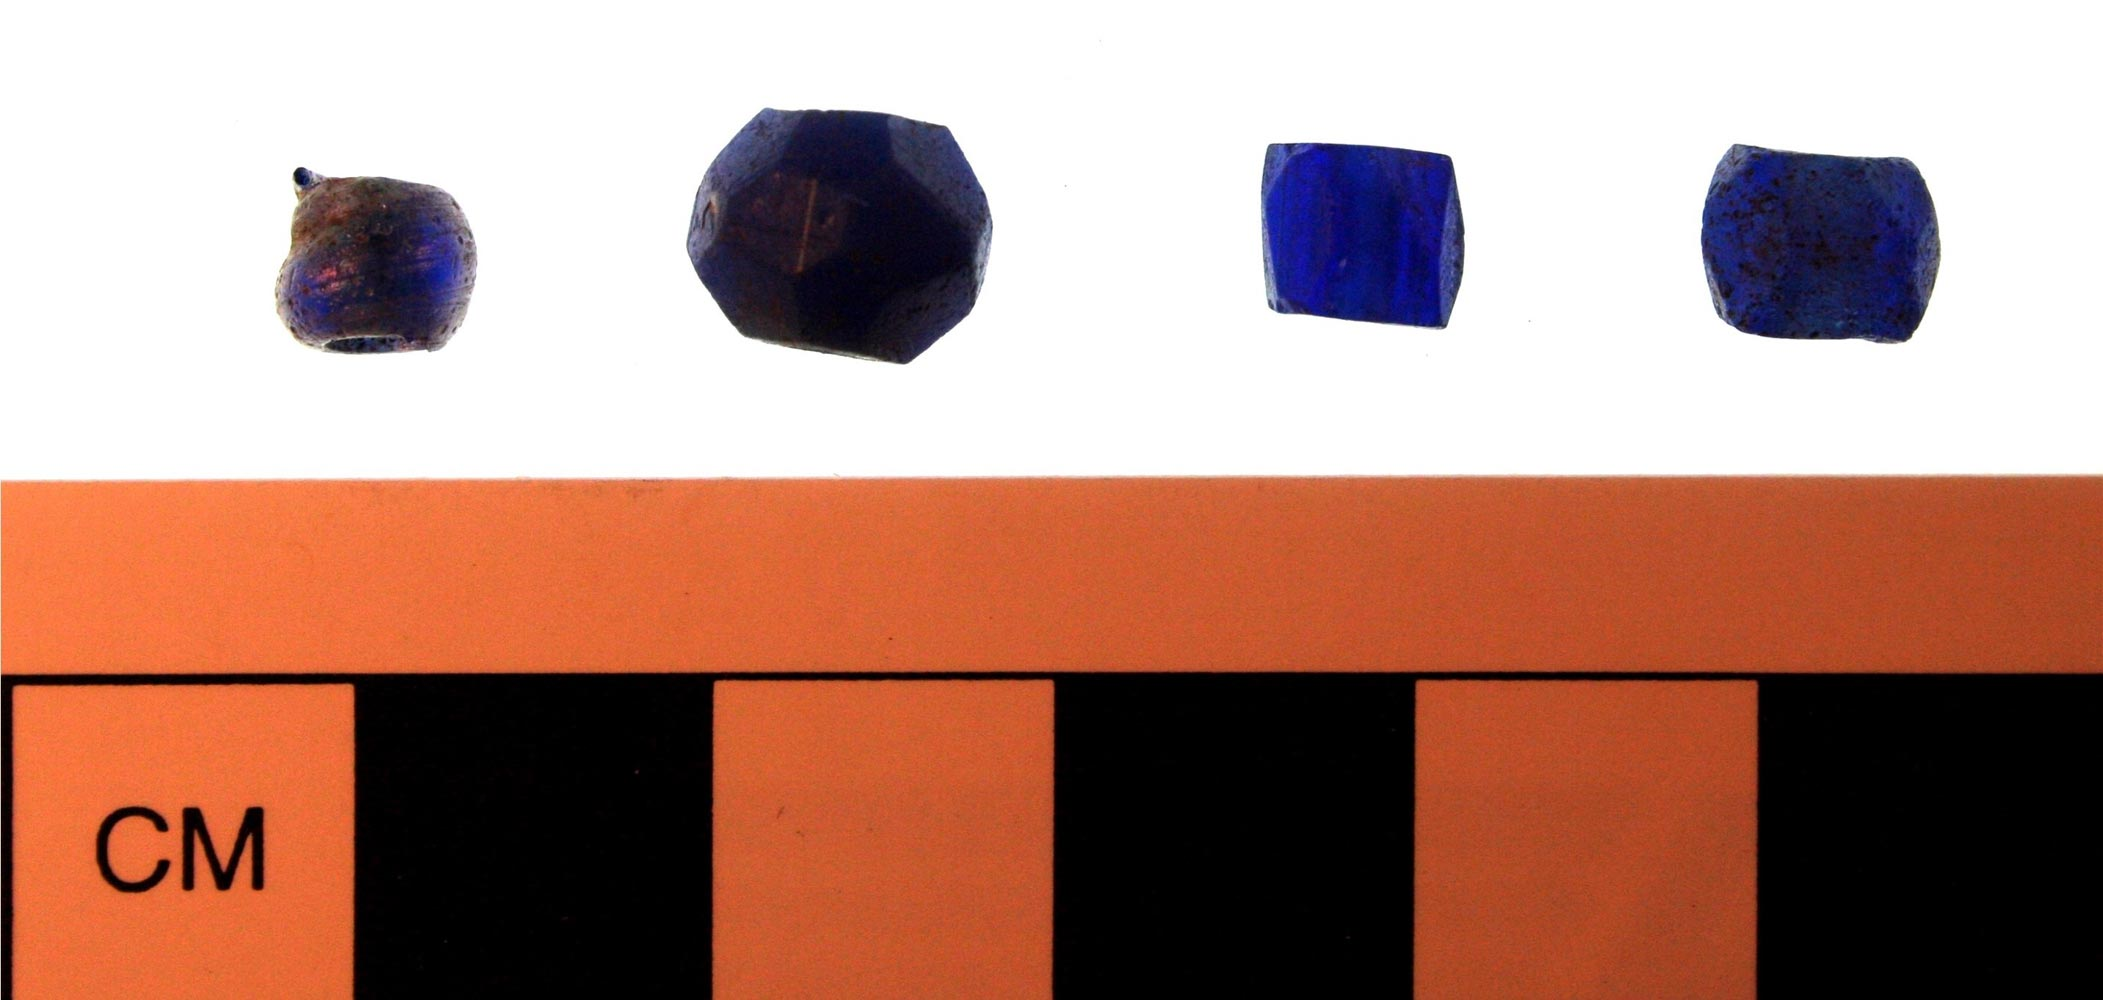 Blue glass trade beads, recovered from Cabin W-12. Many historical archaeologists have interpreted these types of beads, especially cobalt blue examples, as potential charms, worn by enslaved people to ward off malevolent forces. (Courtesy of James M. Davidson)